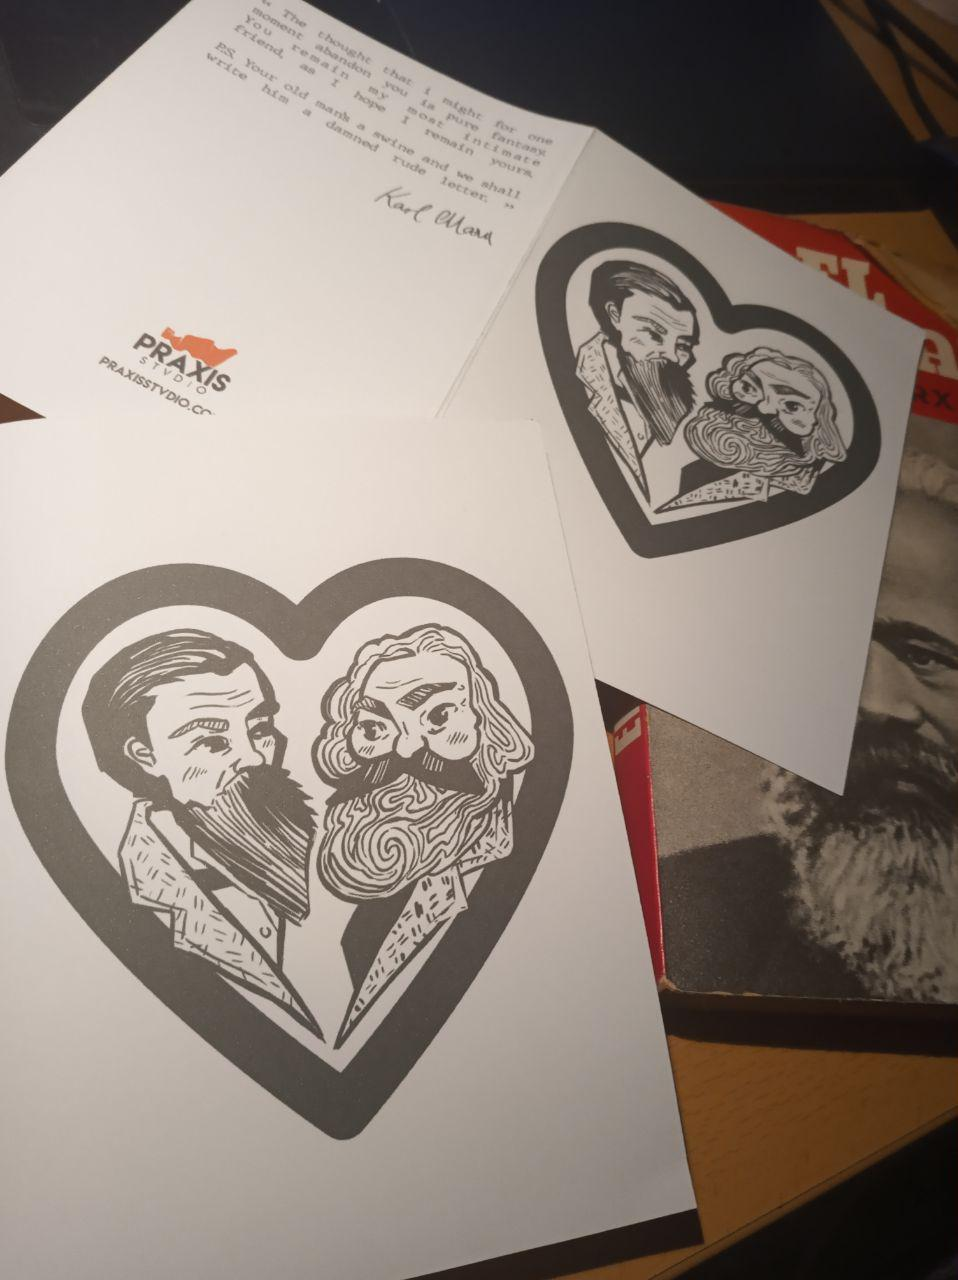 Marx/Engels bromance new cards